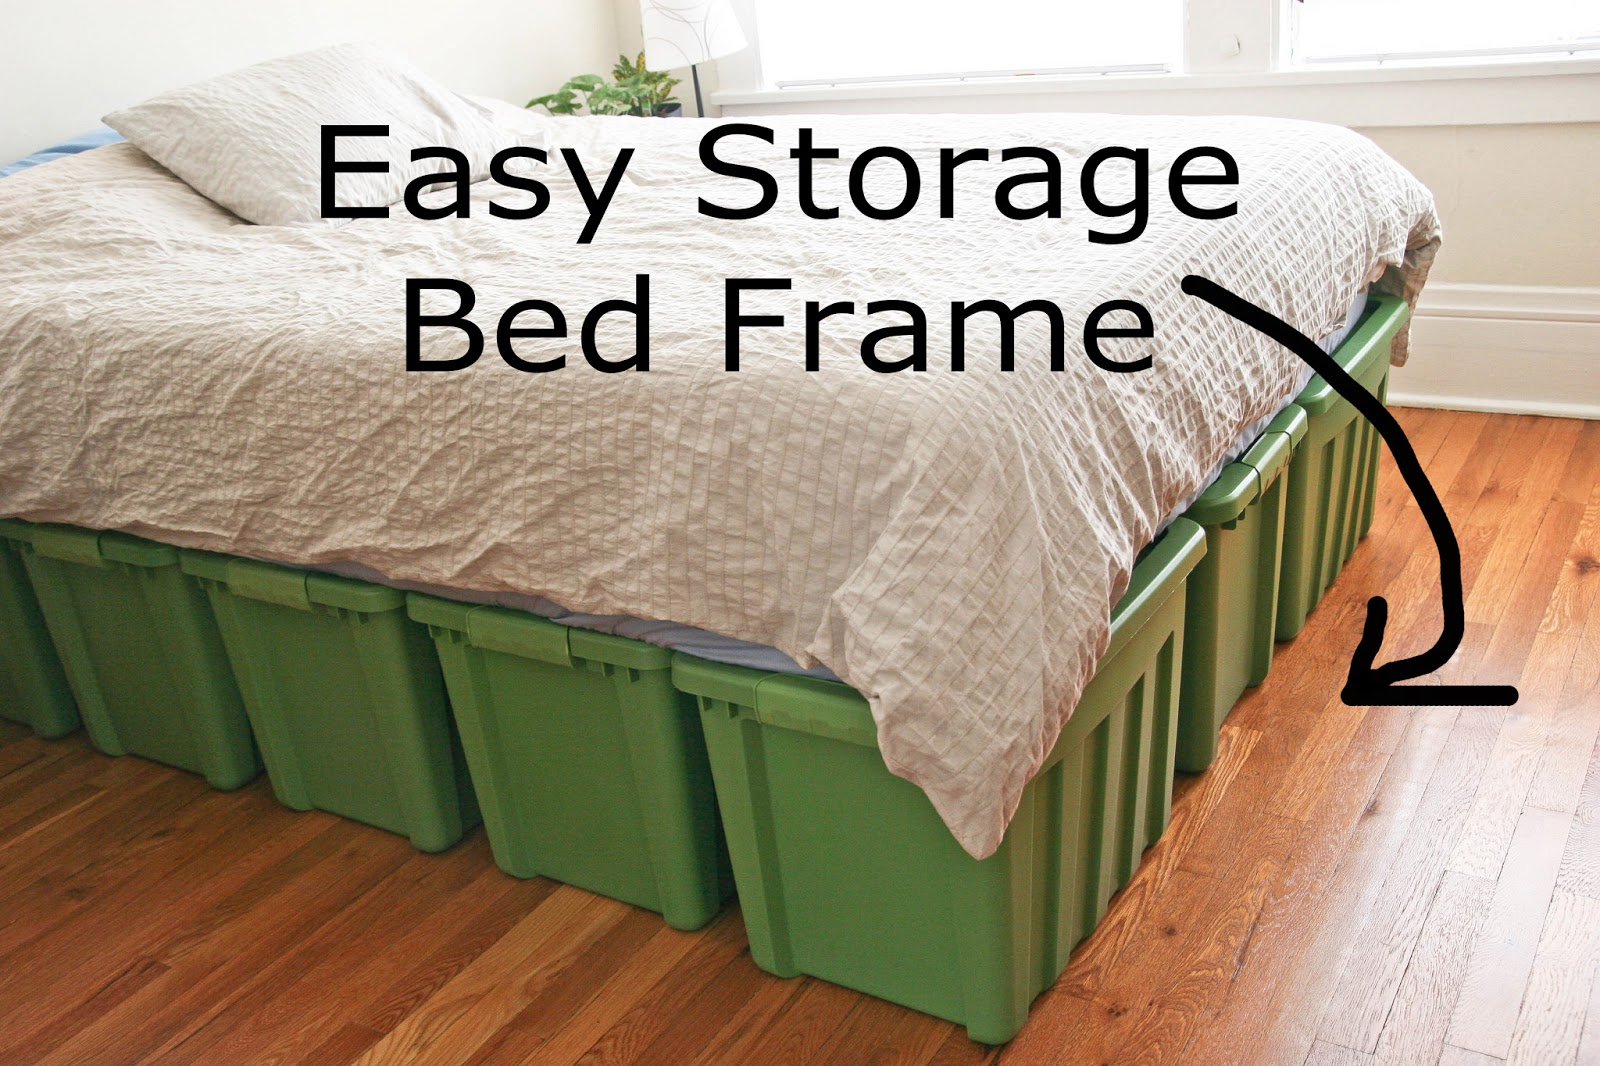 Diy Bed Frame Pallet A rubbermaid bed frame!